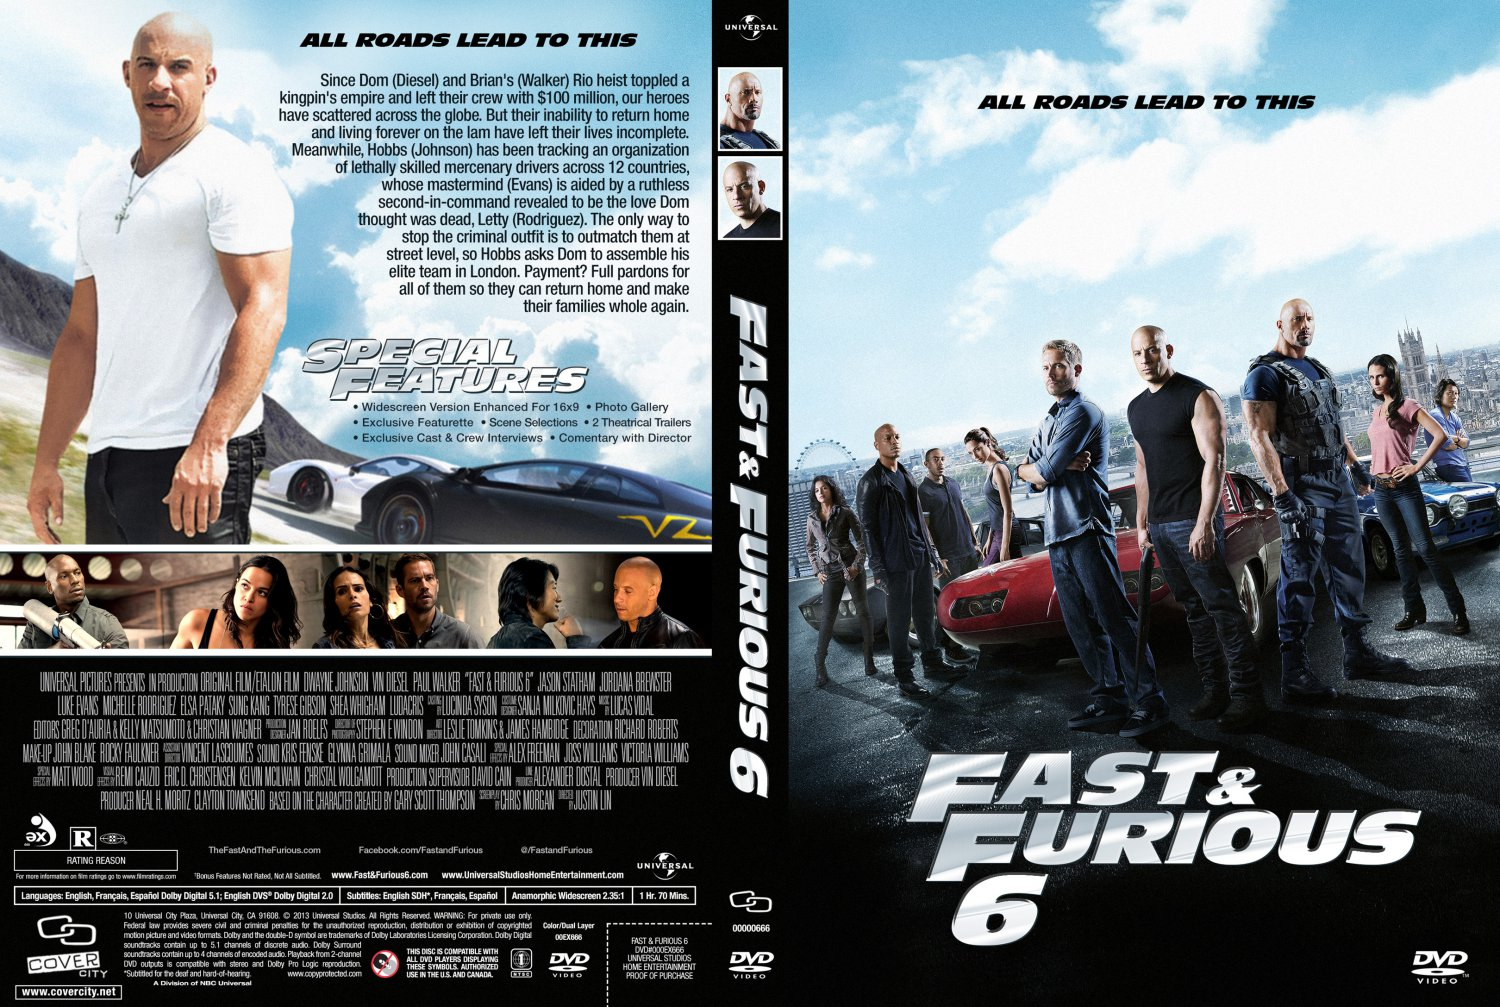 fast and furious 6 movie dvd custom covers fast. Black Bedroom Furniture Sets. Home Design Ideas